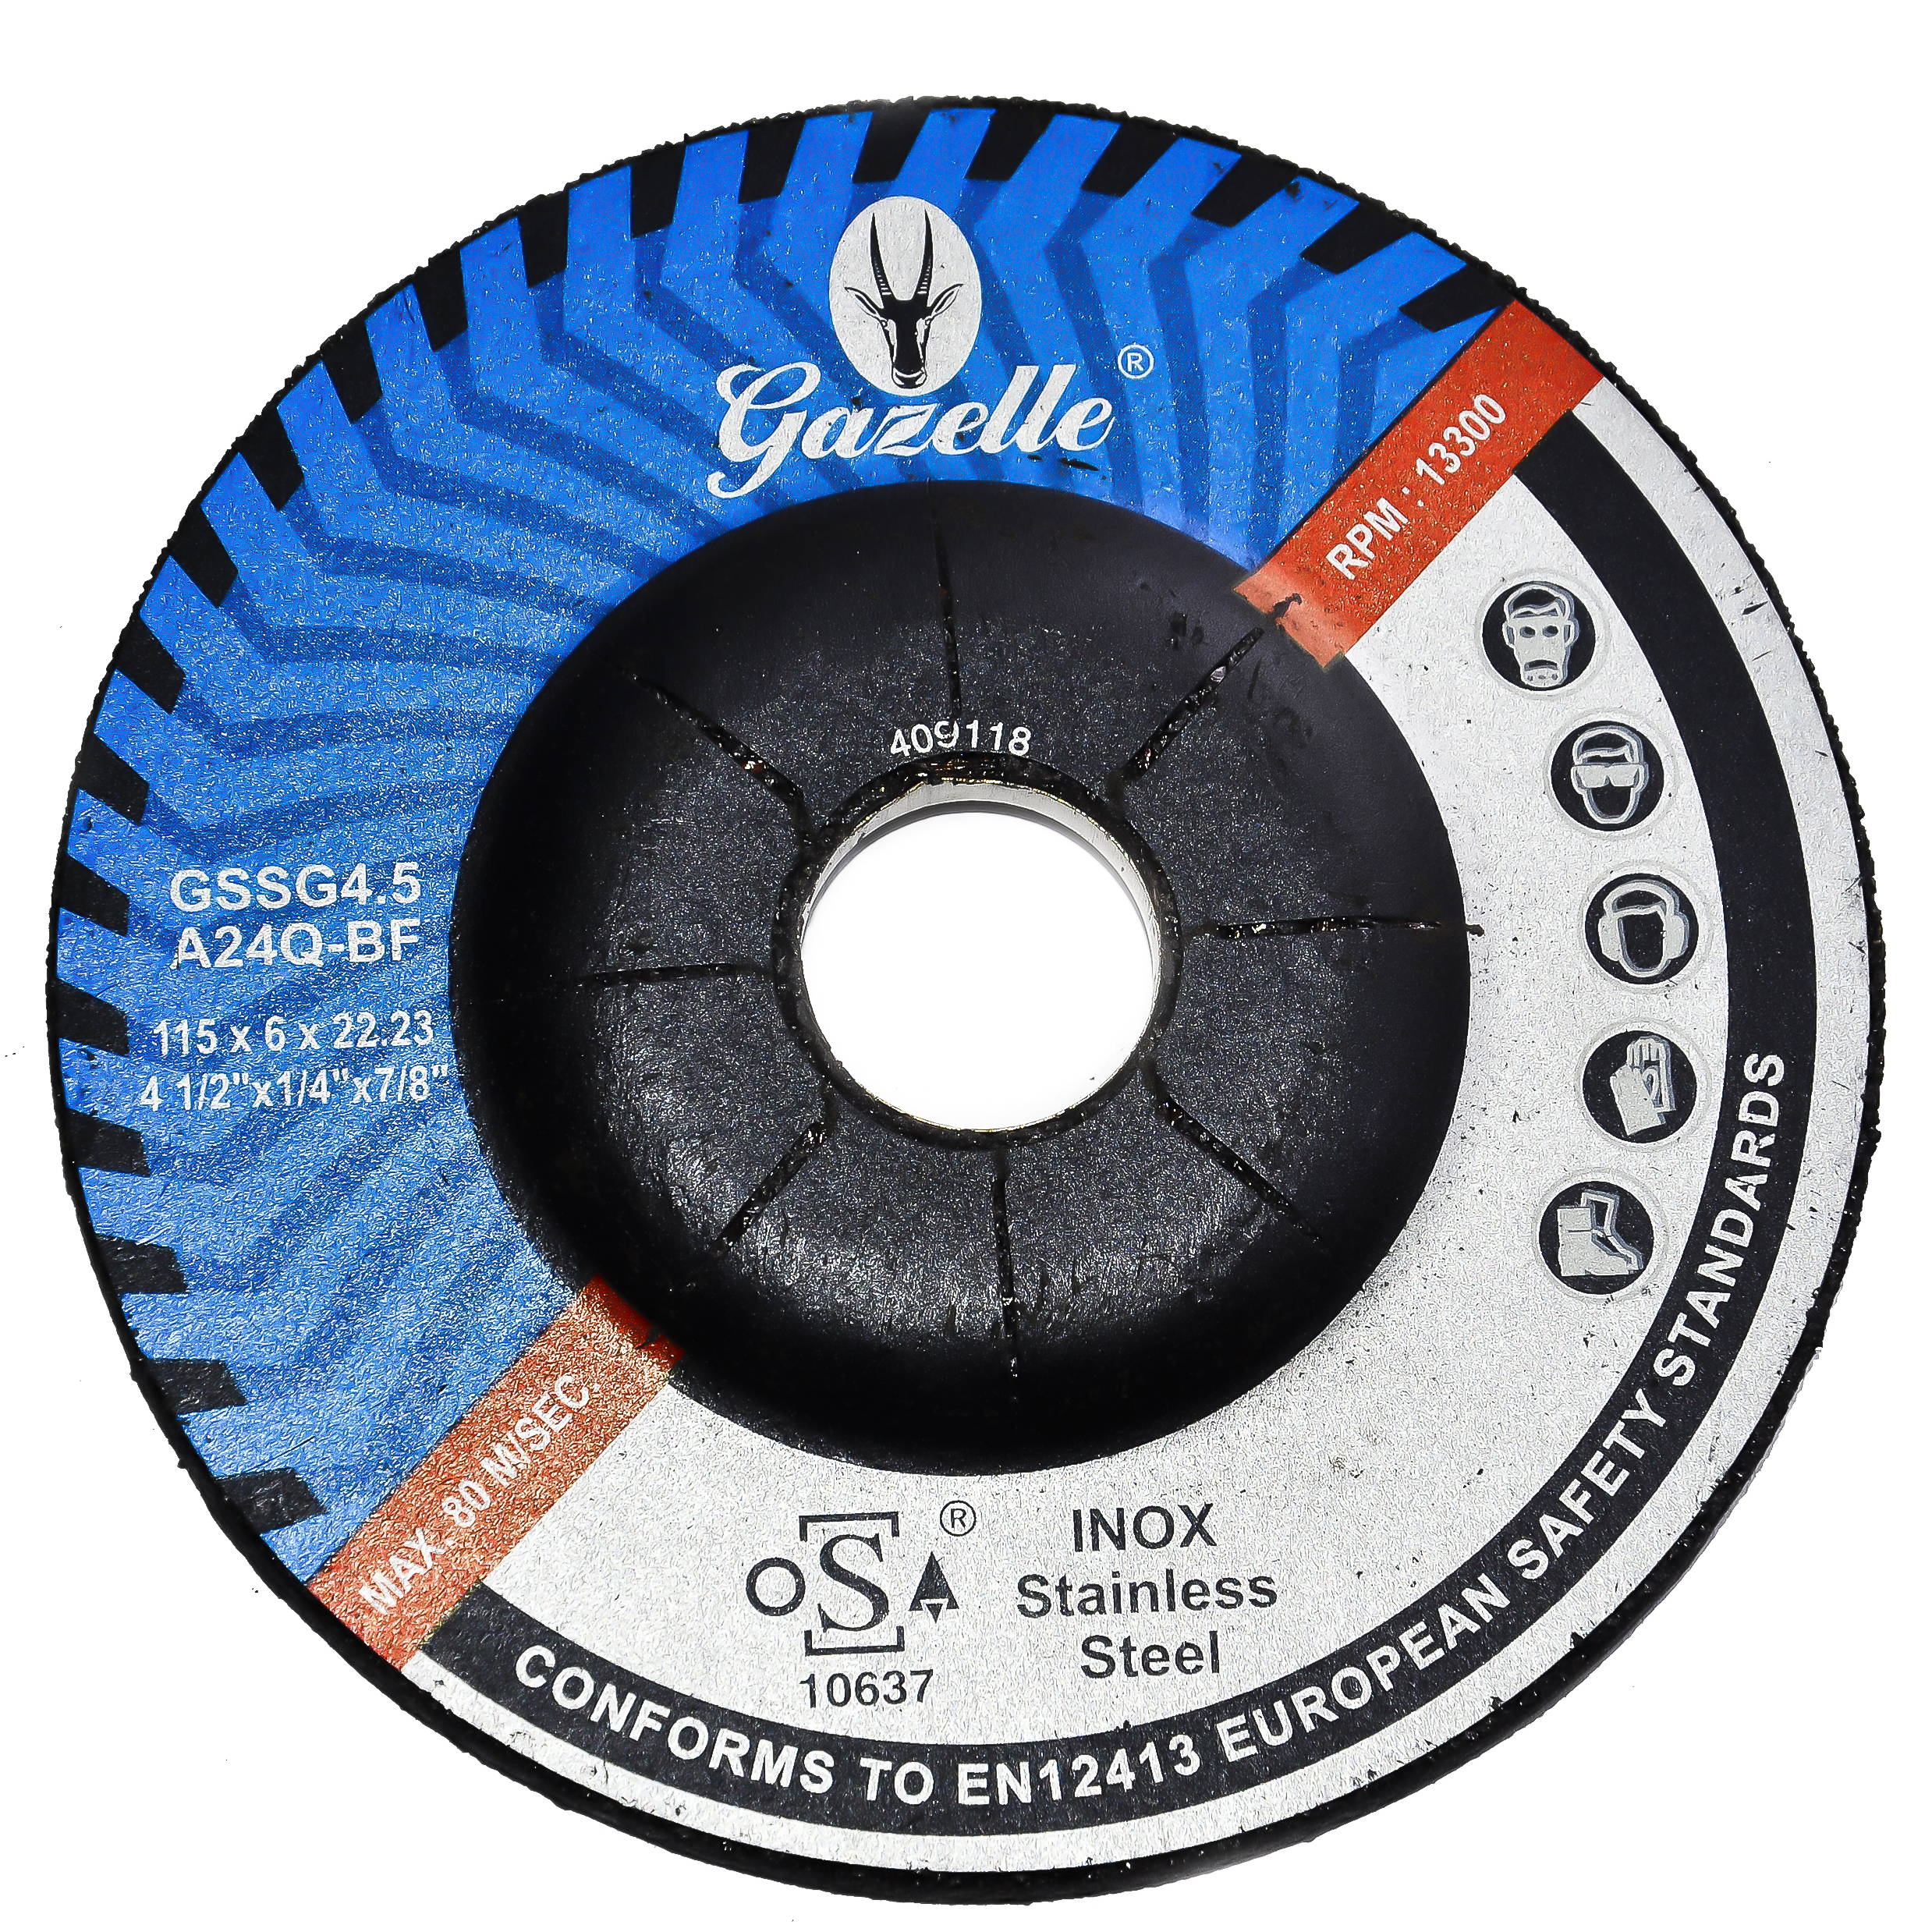 GAZELLE GSSG4.5 - Stainless Steel Grinding Disc 4.5in – 115 x 6 x 22mm